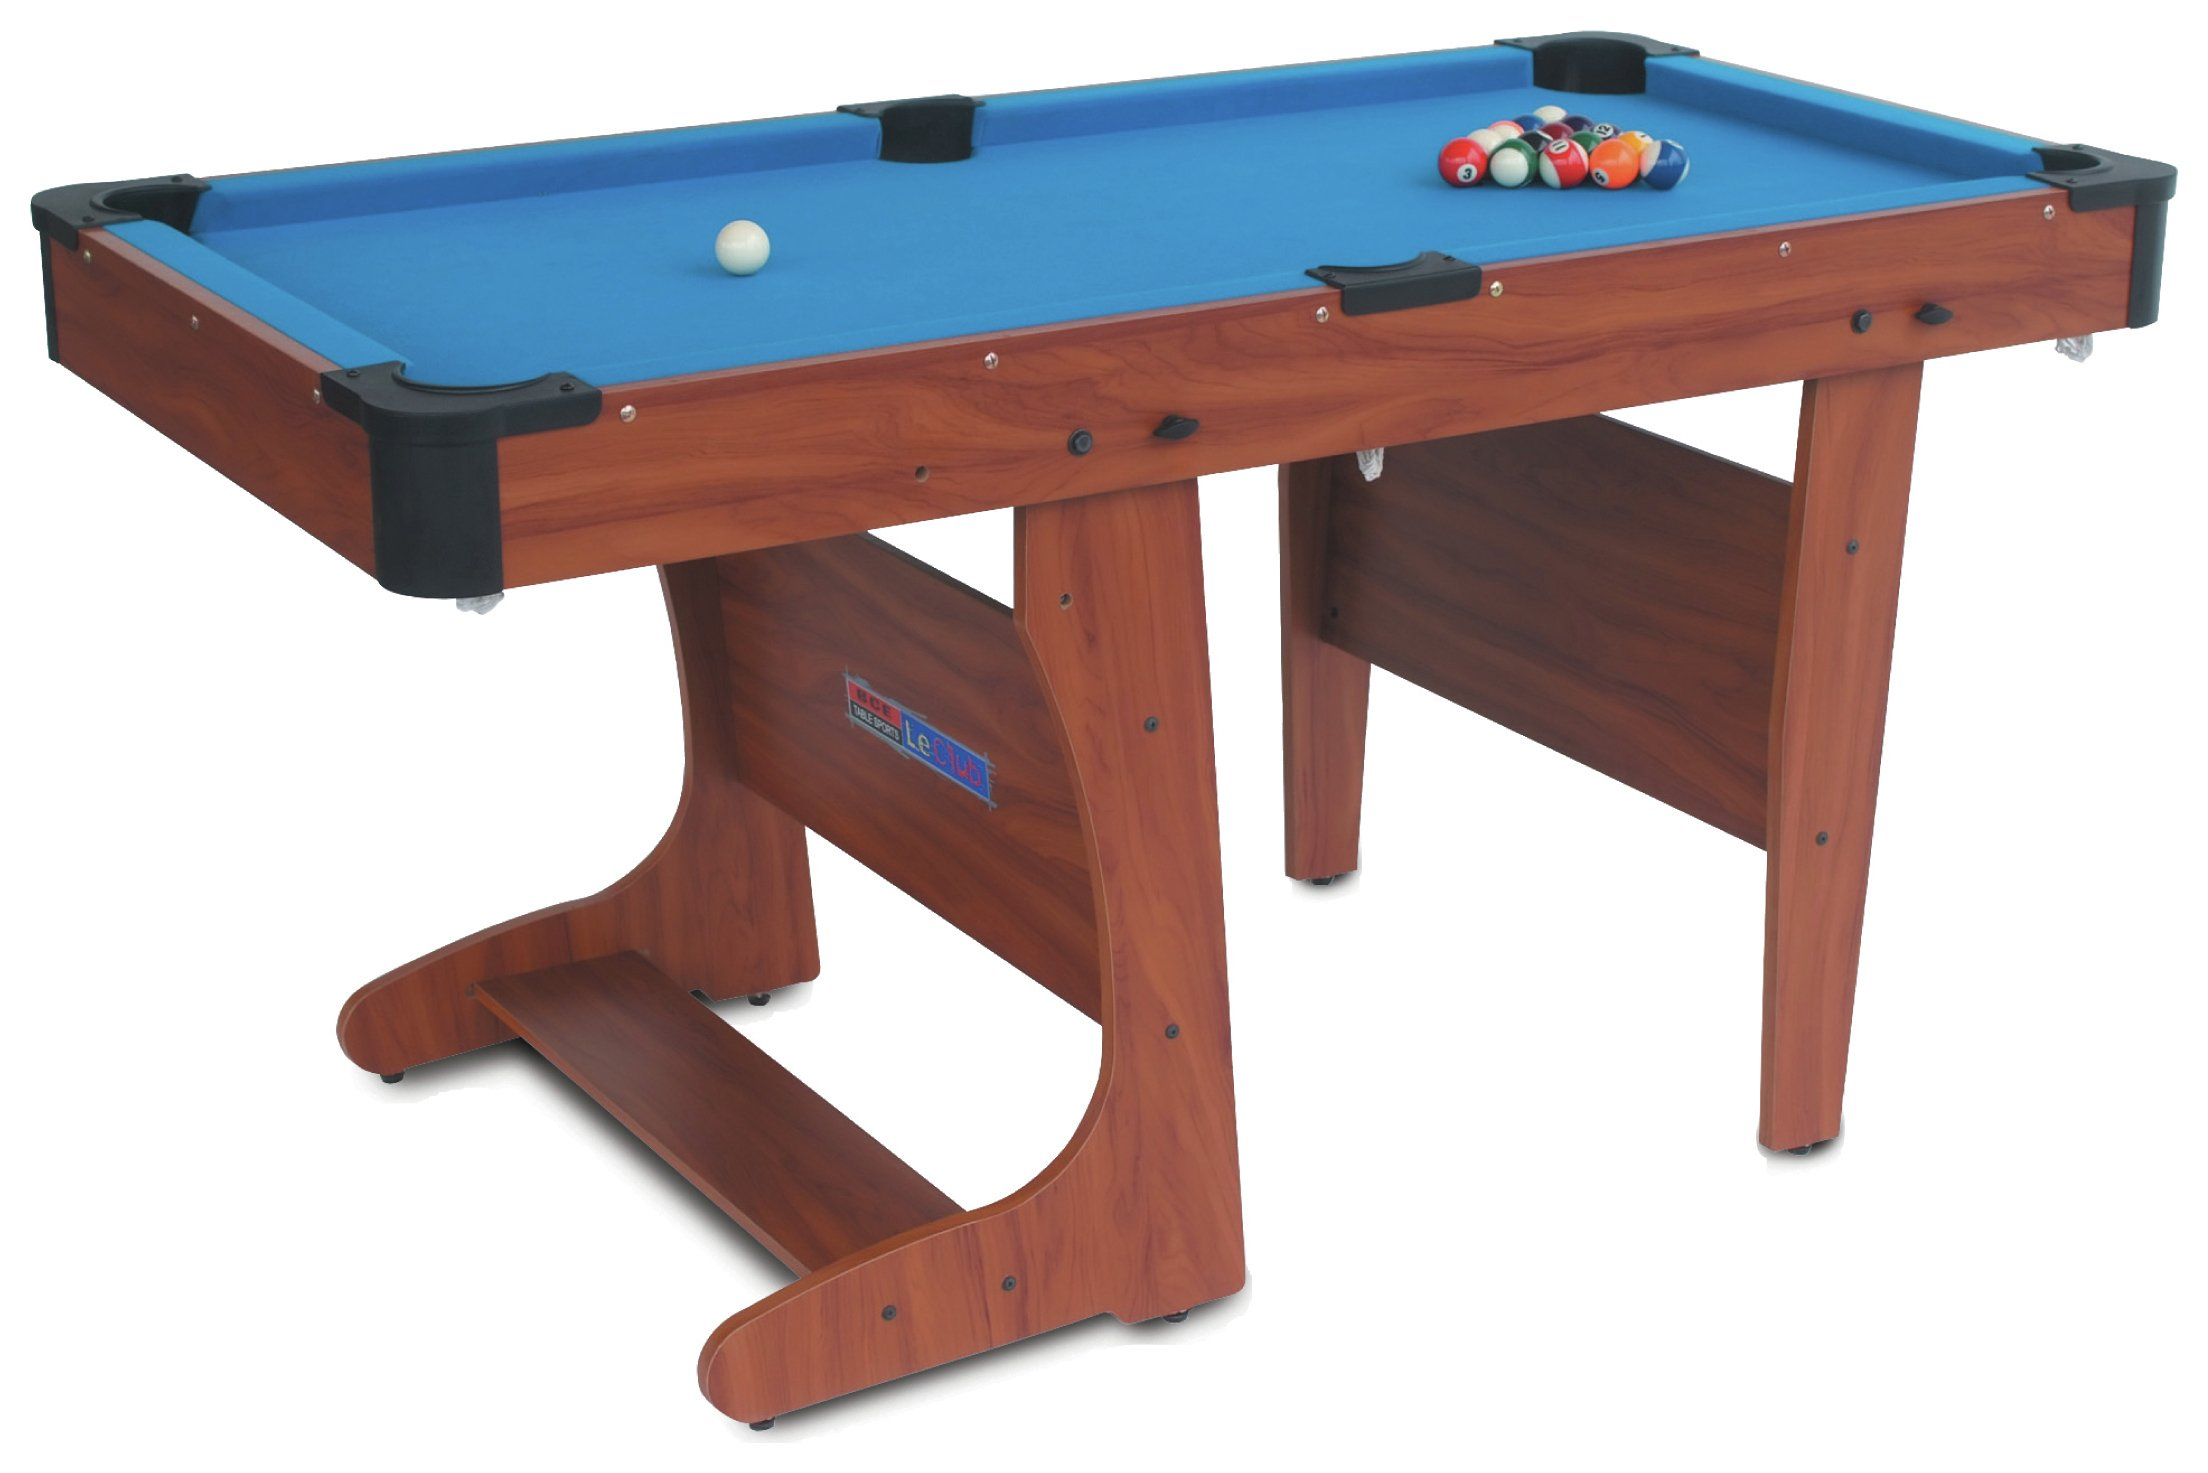 Image of BCE 6ft Clifton Folding Pool Table.